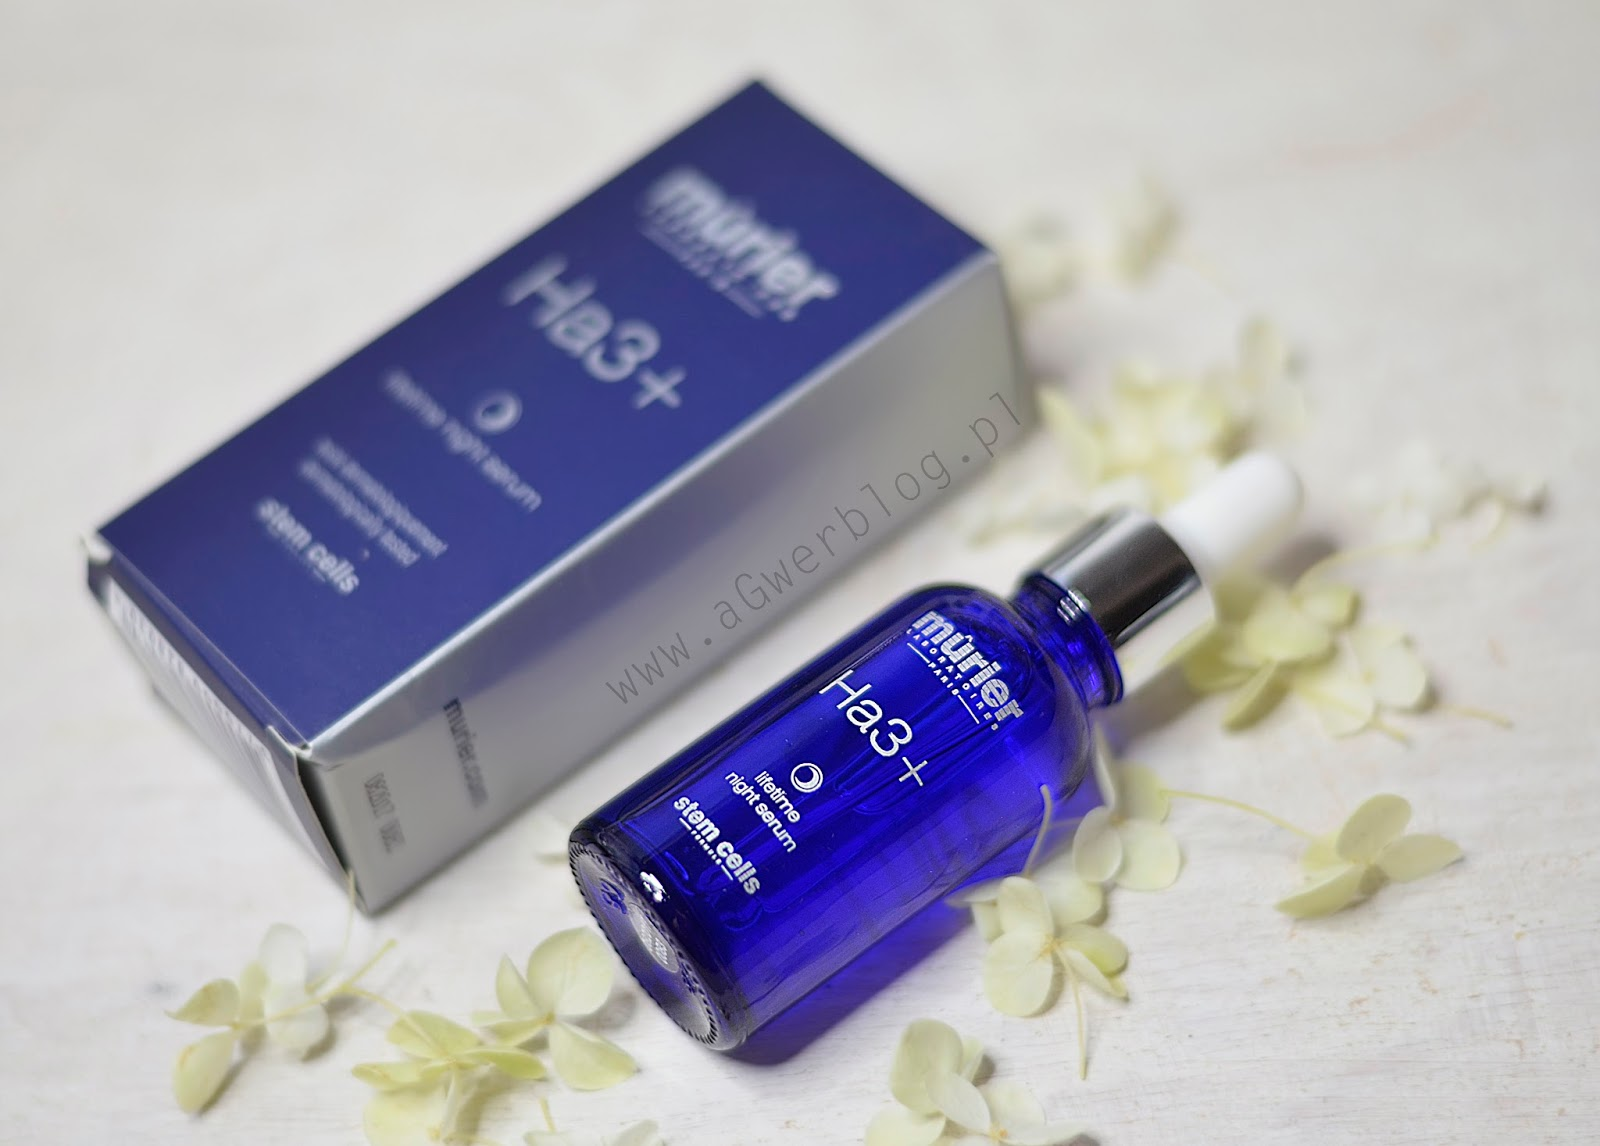 Mûrier | Ha3+ Lifetime Night serum